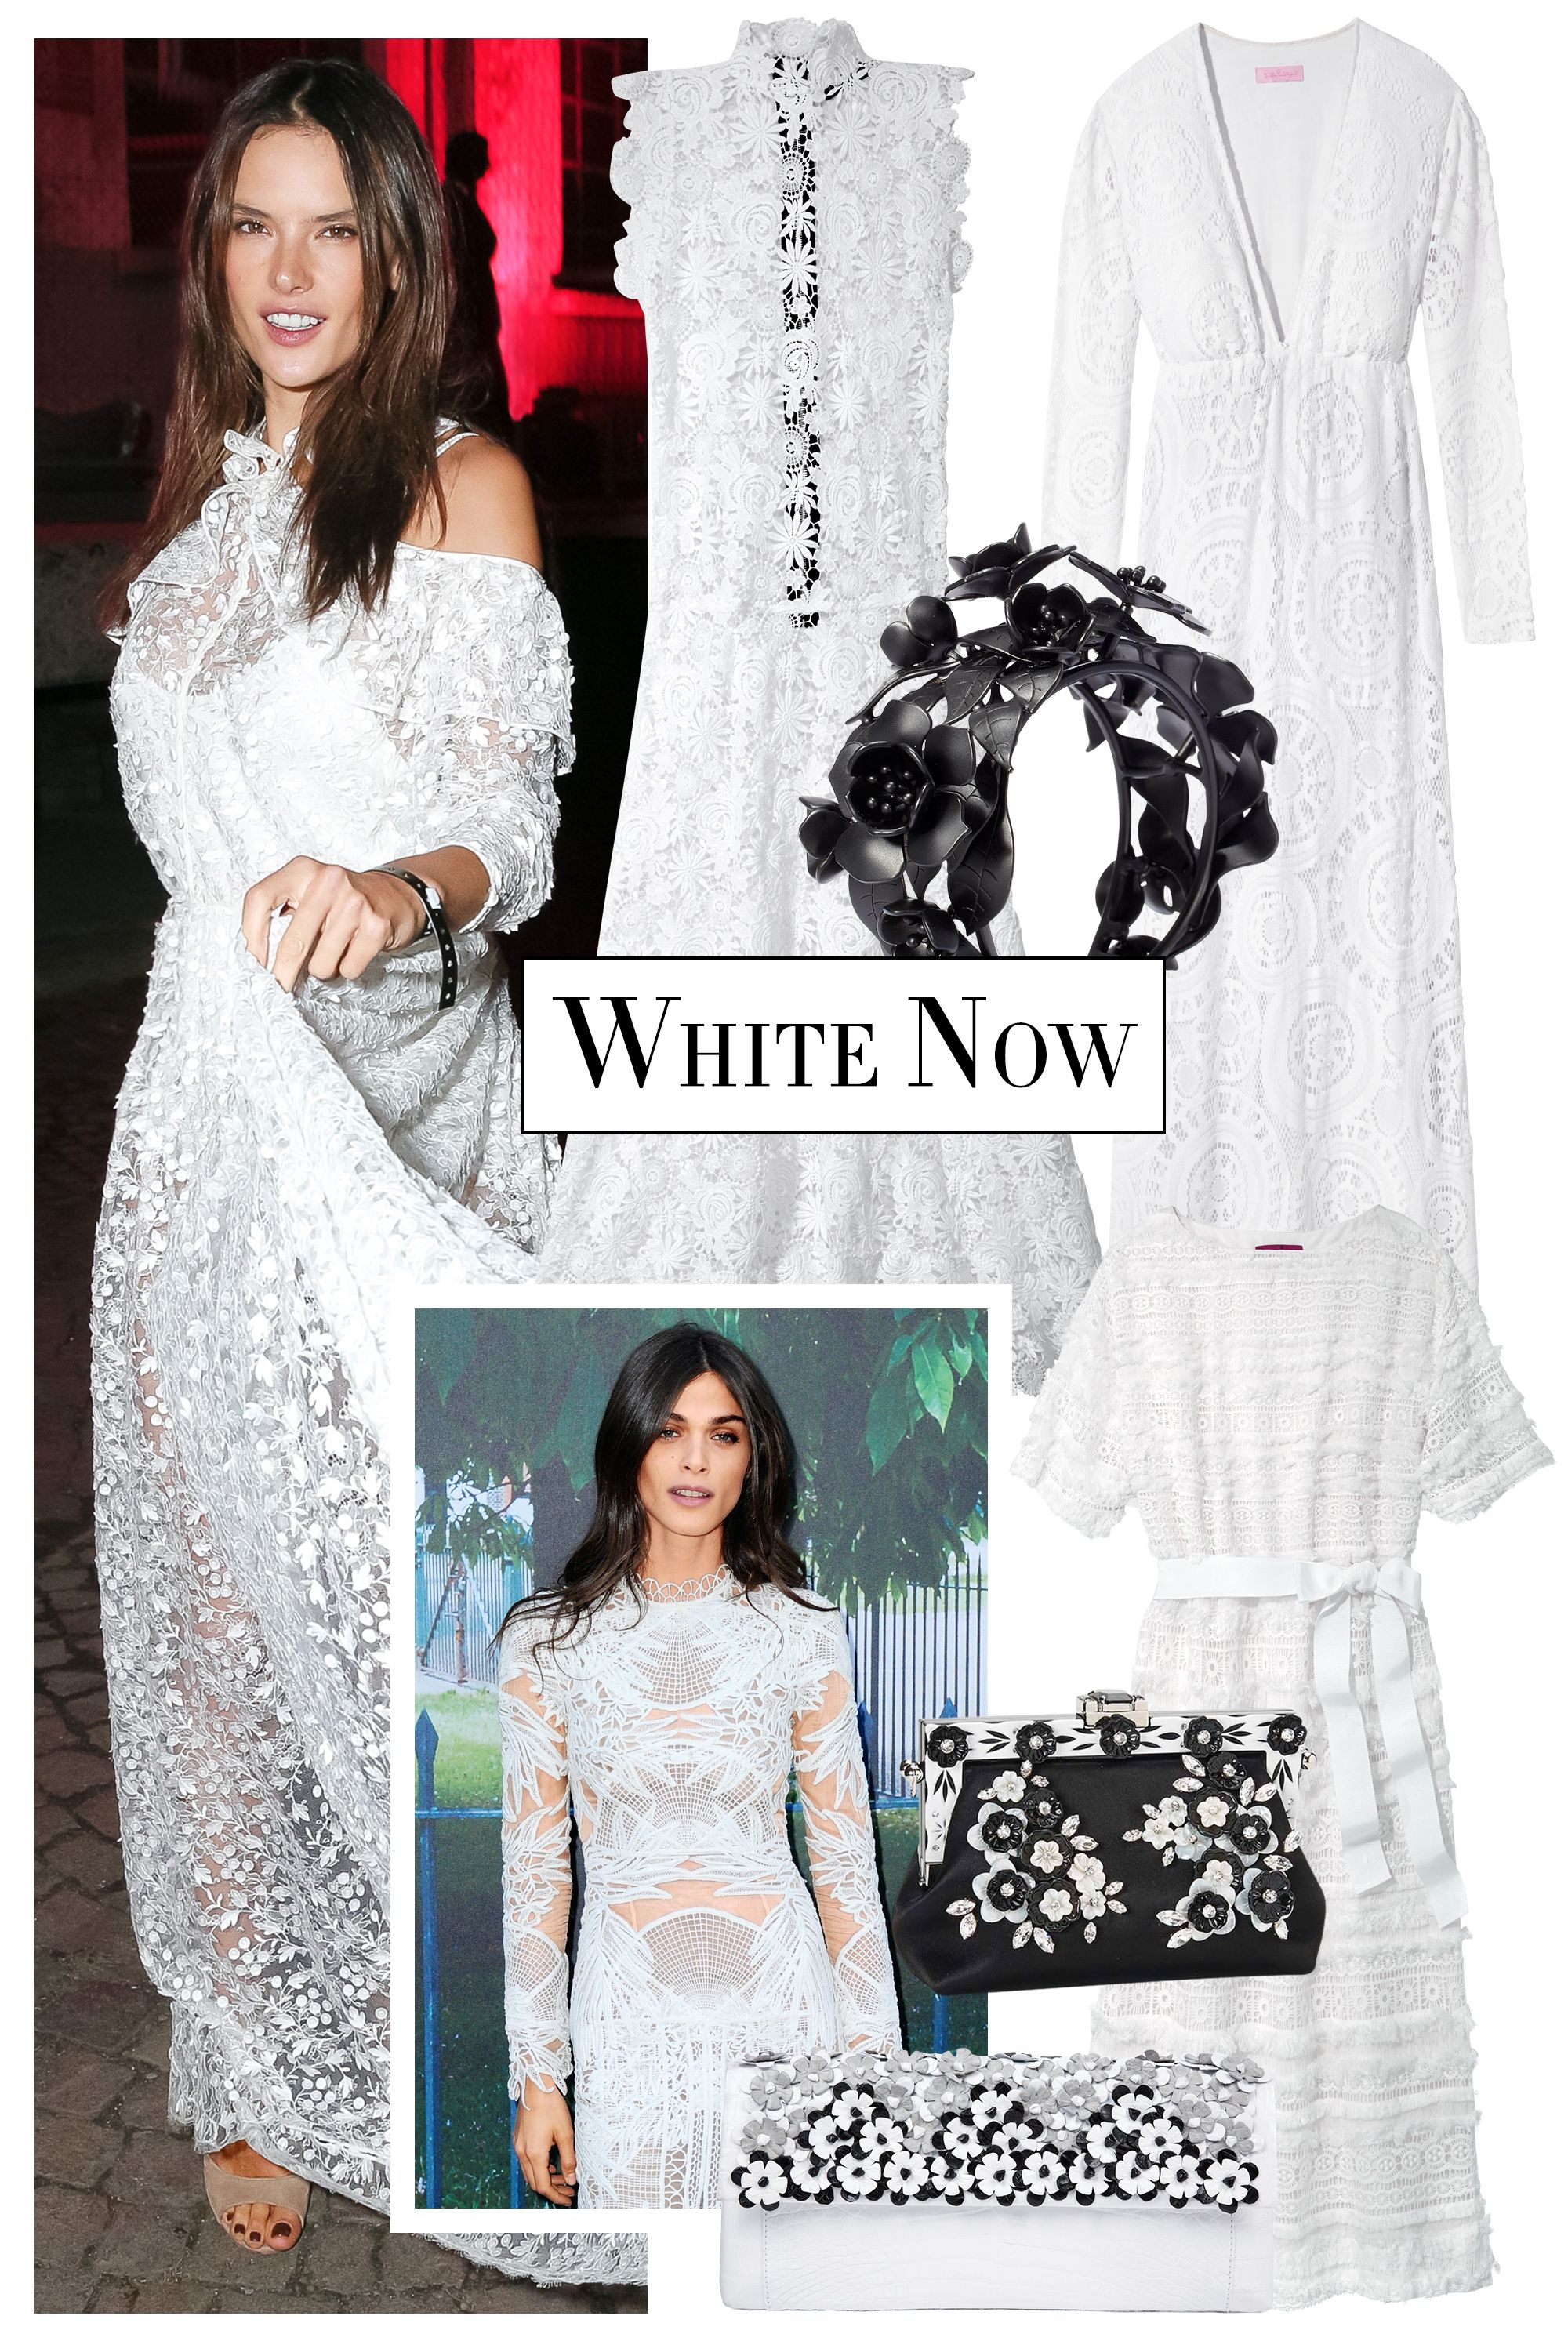 "<p>A romantic white dress is the look of the season. Take your cue from model and actress Elisa Sednaoui and balance an embroidered version with a striking noir-accented accessory. </p><p><strong>CH Carolina Herrera</strong> dress, $970, 212-744-2076; <strong>The Perfext</strong> dress, $1,995, <a href=""https://shop.harpersbazaar.com/designers/the-perfext/"" target=""_blank"">shopBAZAAR.com</a><img src=""http://assets.hdmtools.com/images/HBZ/Shop.svg"" class=""icon shop"">; <strong>Valentino Garavani</strong> cuff, $875, <a href=""http://www.valentino.com/us"" target=""_blank"">valentino.com</a>; <strong>Lily Pulitzer</strong> dress, $398, <a href=""http://www.lillypulitzer.com/"" target=""_blank"">lilypulitzer.com</a>; <strong>Nancy Gonzalez</strong> clutch, $2,700, Saks Fifth Avenue, 877-551-7257; <strong>Dolce & Gabbana</strong> clutch, $3,995, 877-70-DGUSA.</p>"